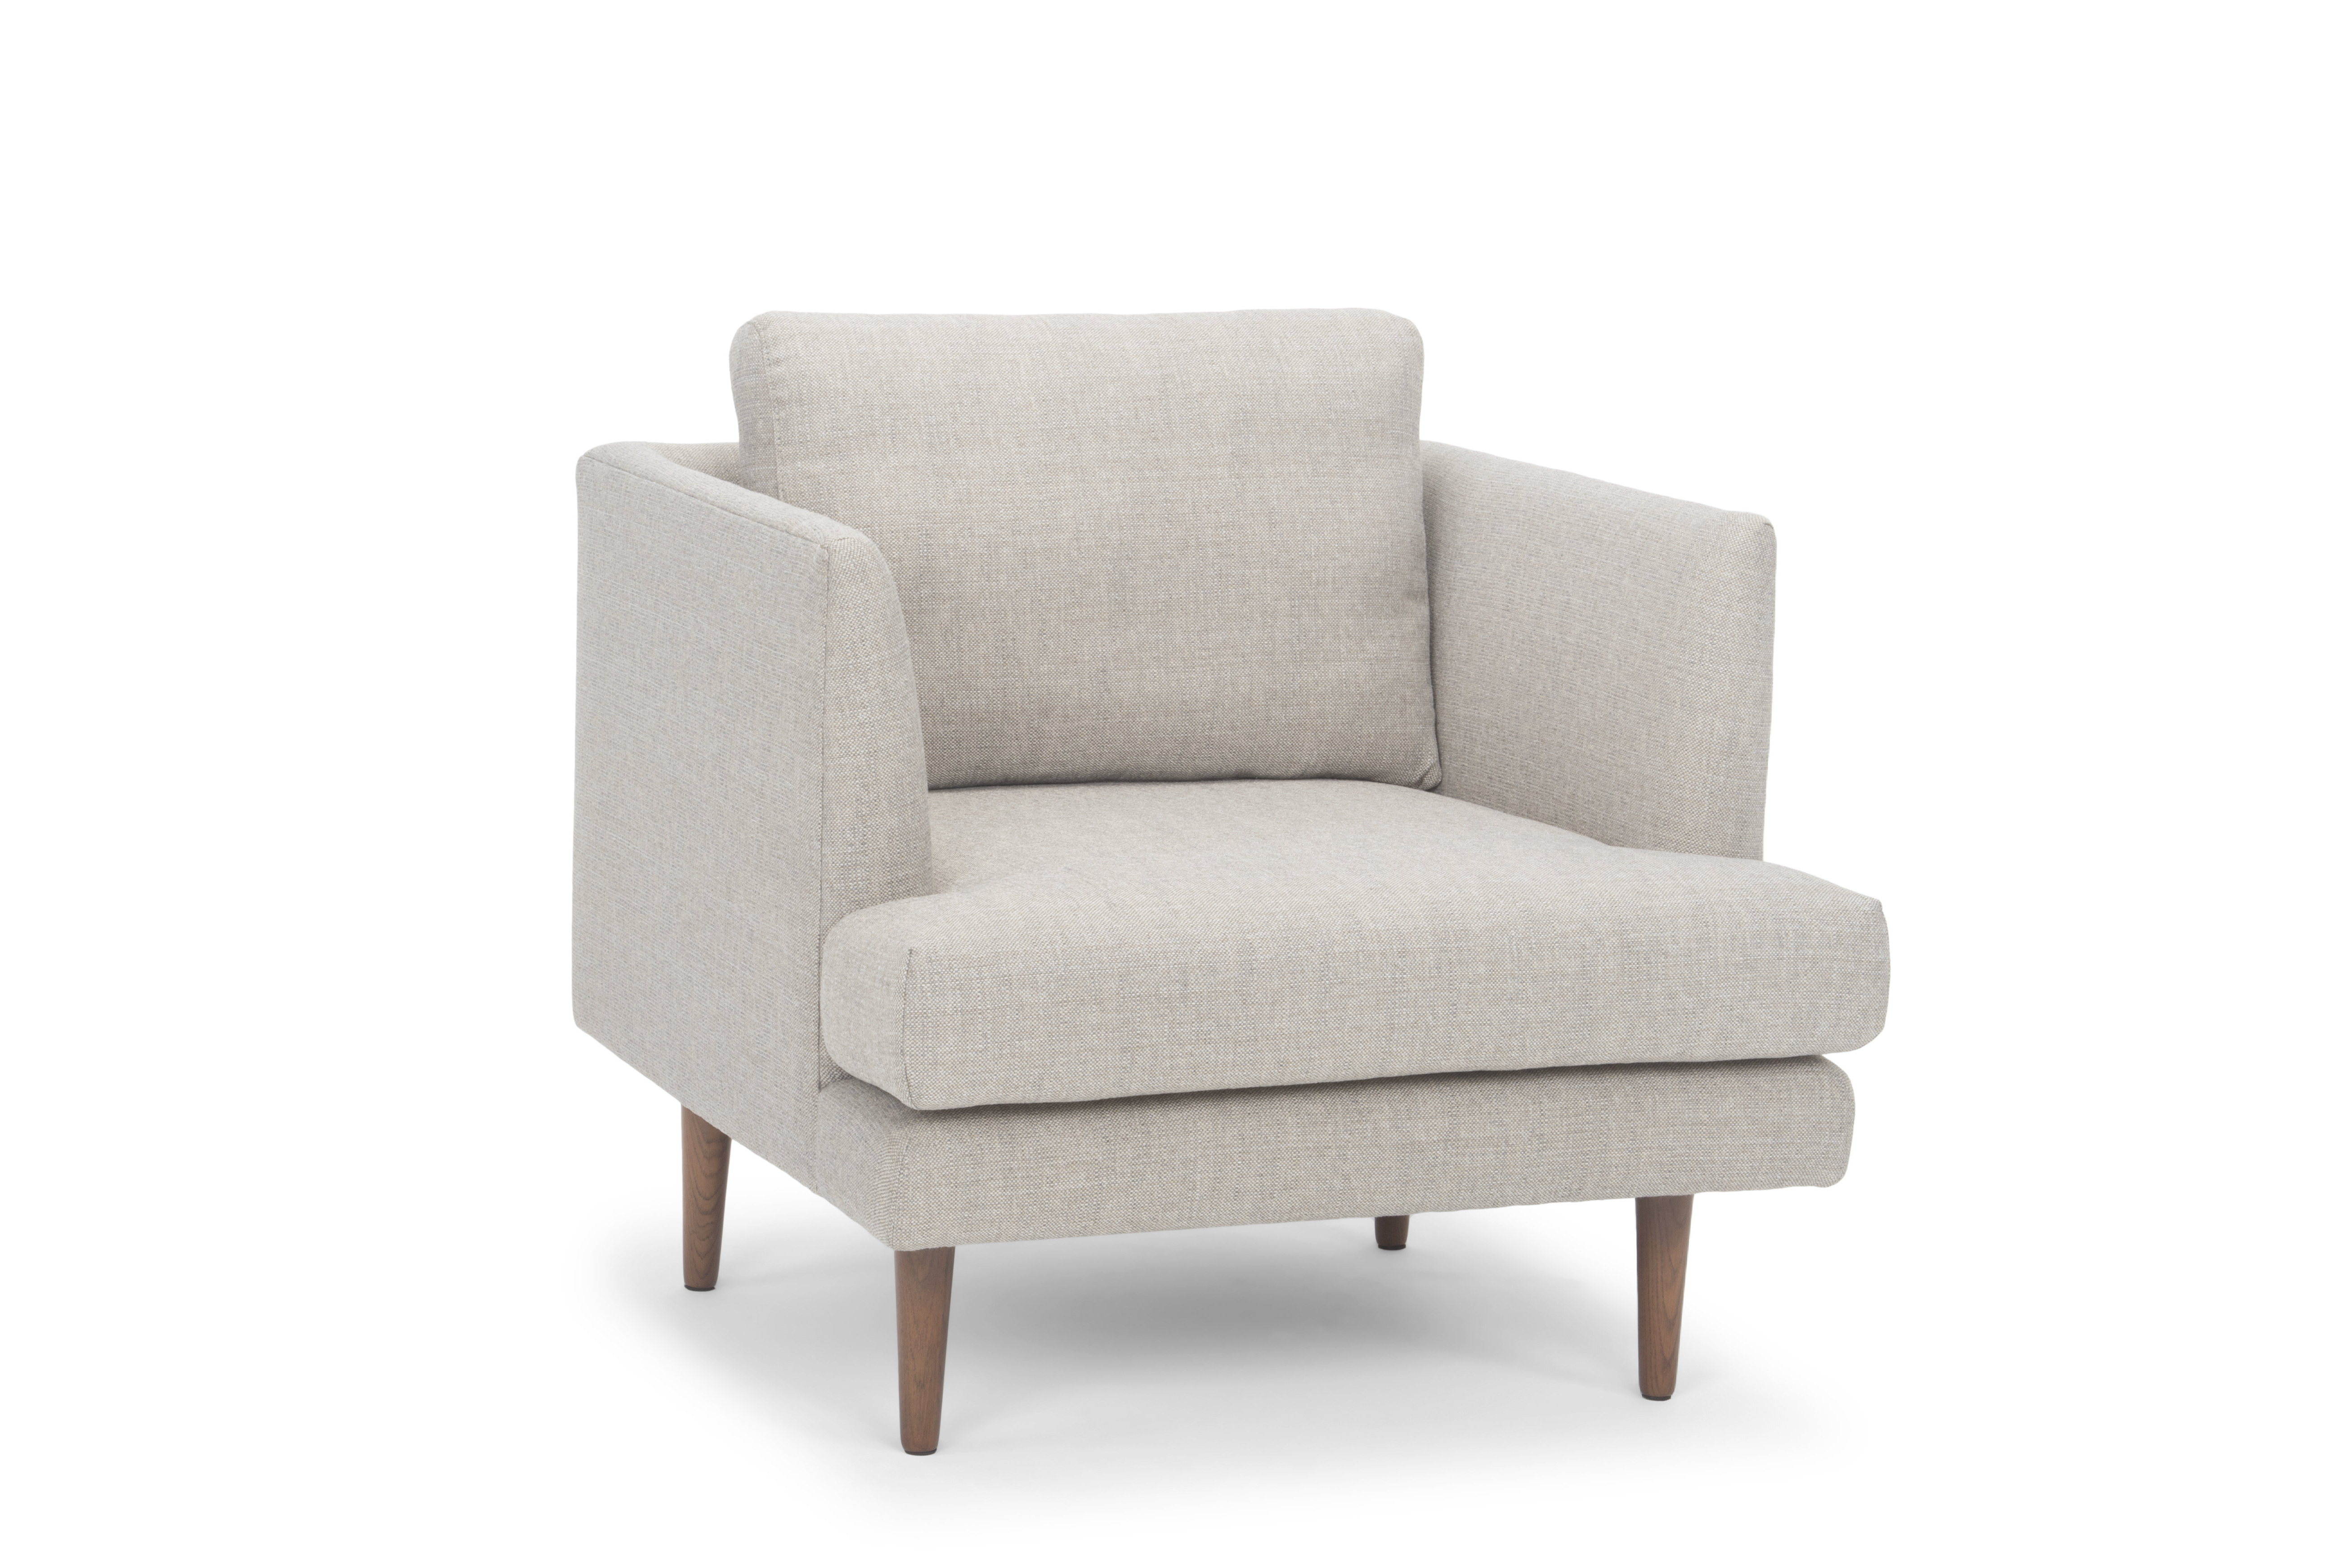 Katrina Beige Swivel Glider Chairs Within Most Recent Octavio Armchair & Reviews (Gallery 10 of 20)